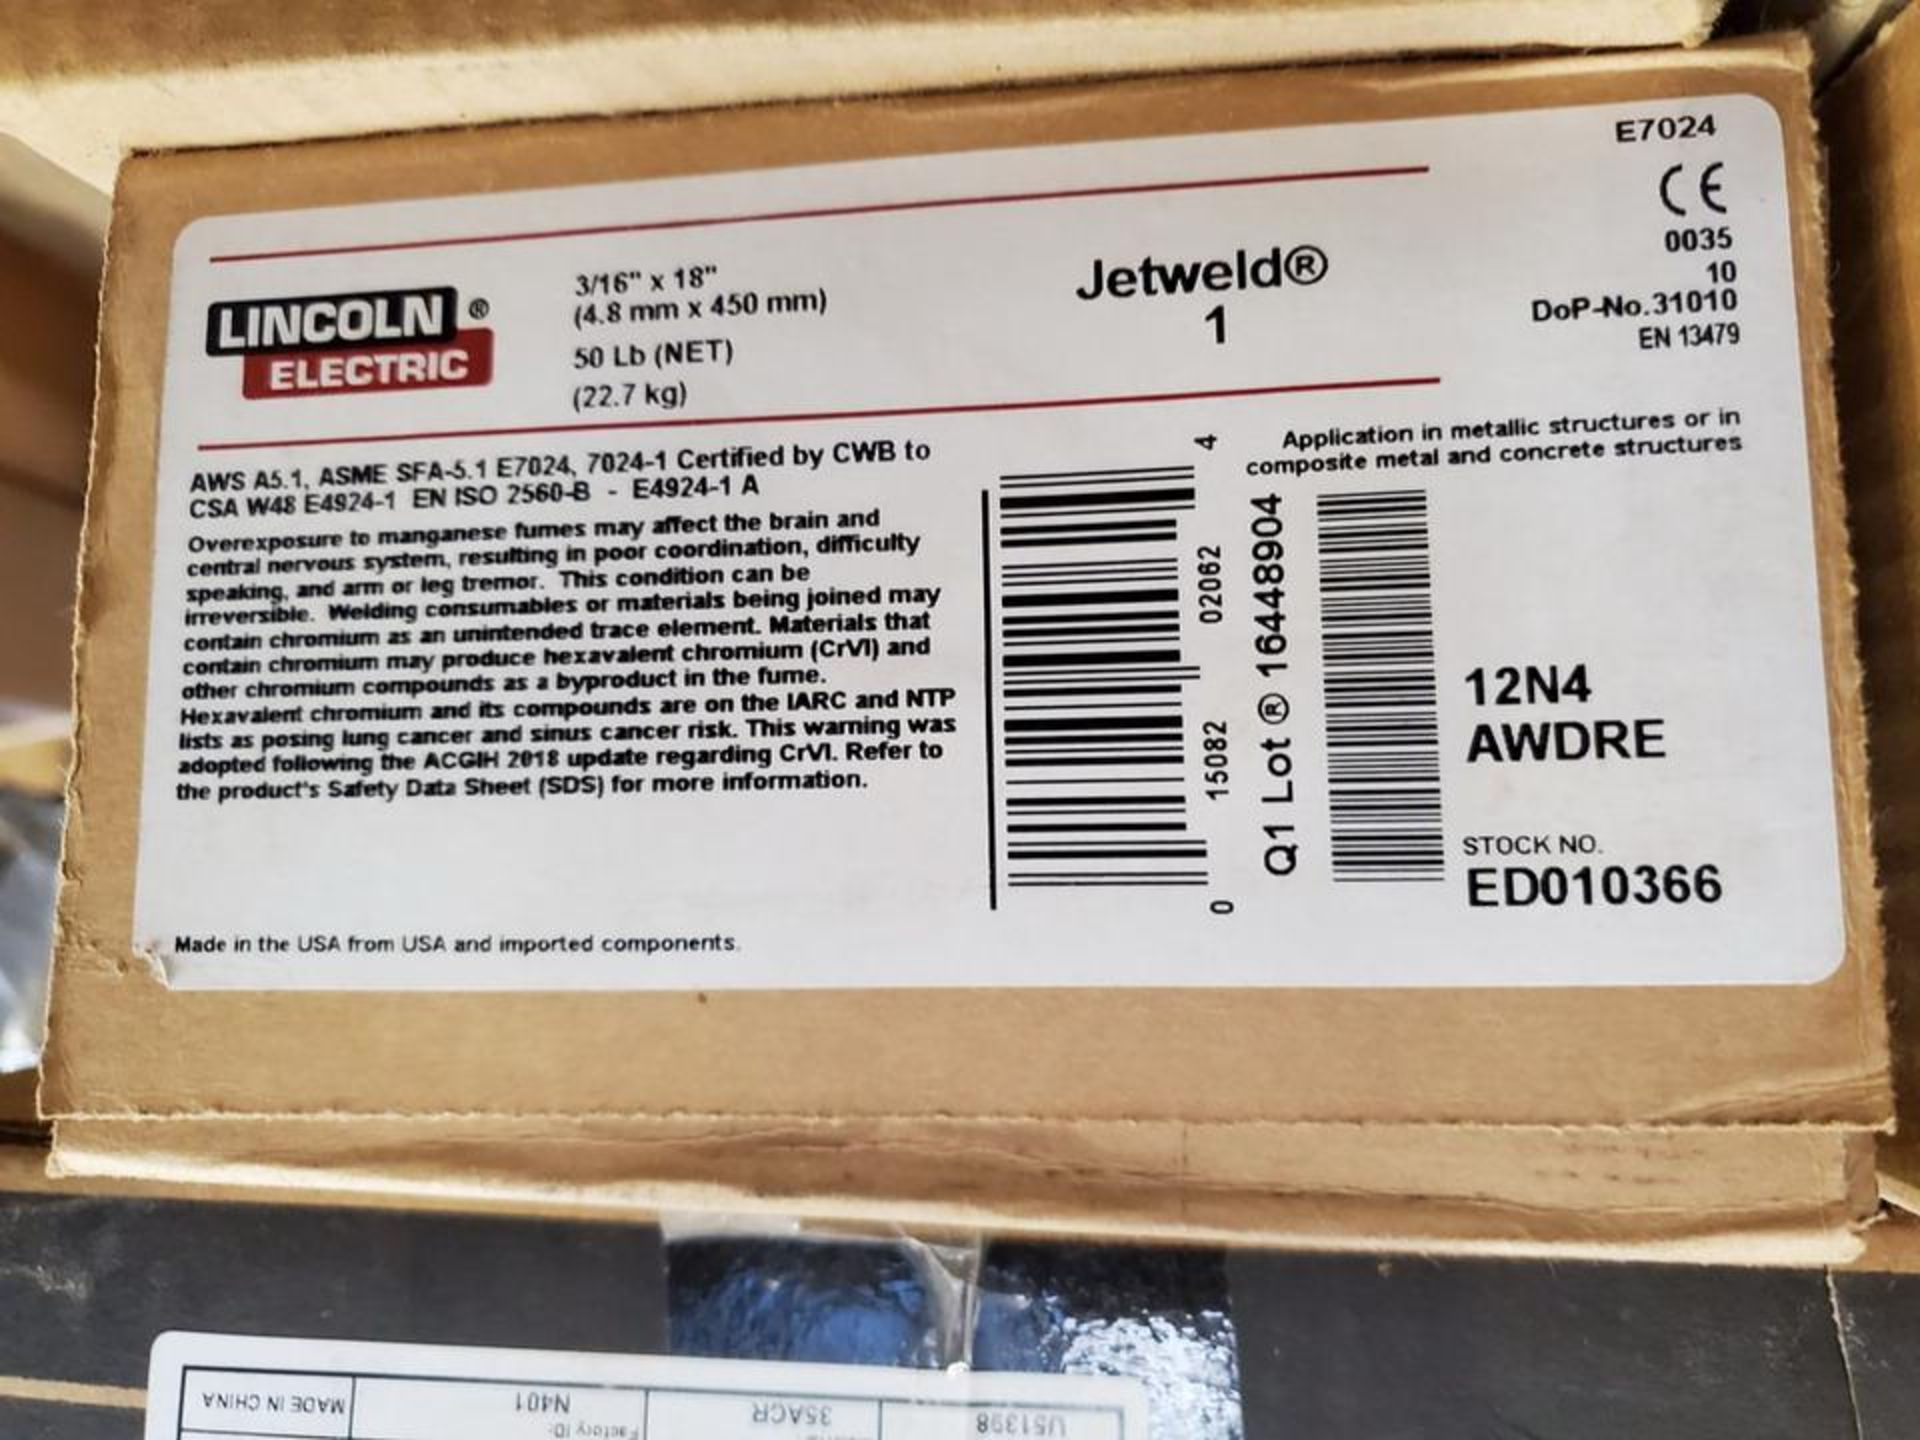 """LE Assorted Welding Rods Size Range: 5/32"""" x 14"""" 3/16"""" x 18"""" - Image 8 of 8"""